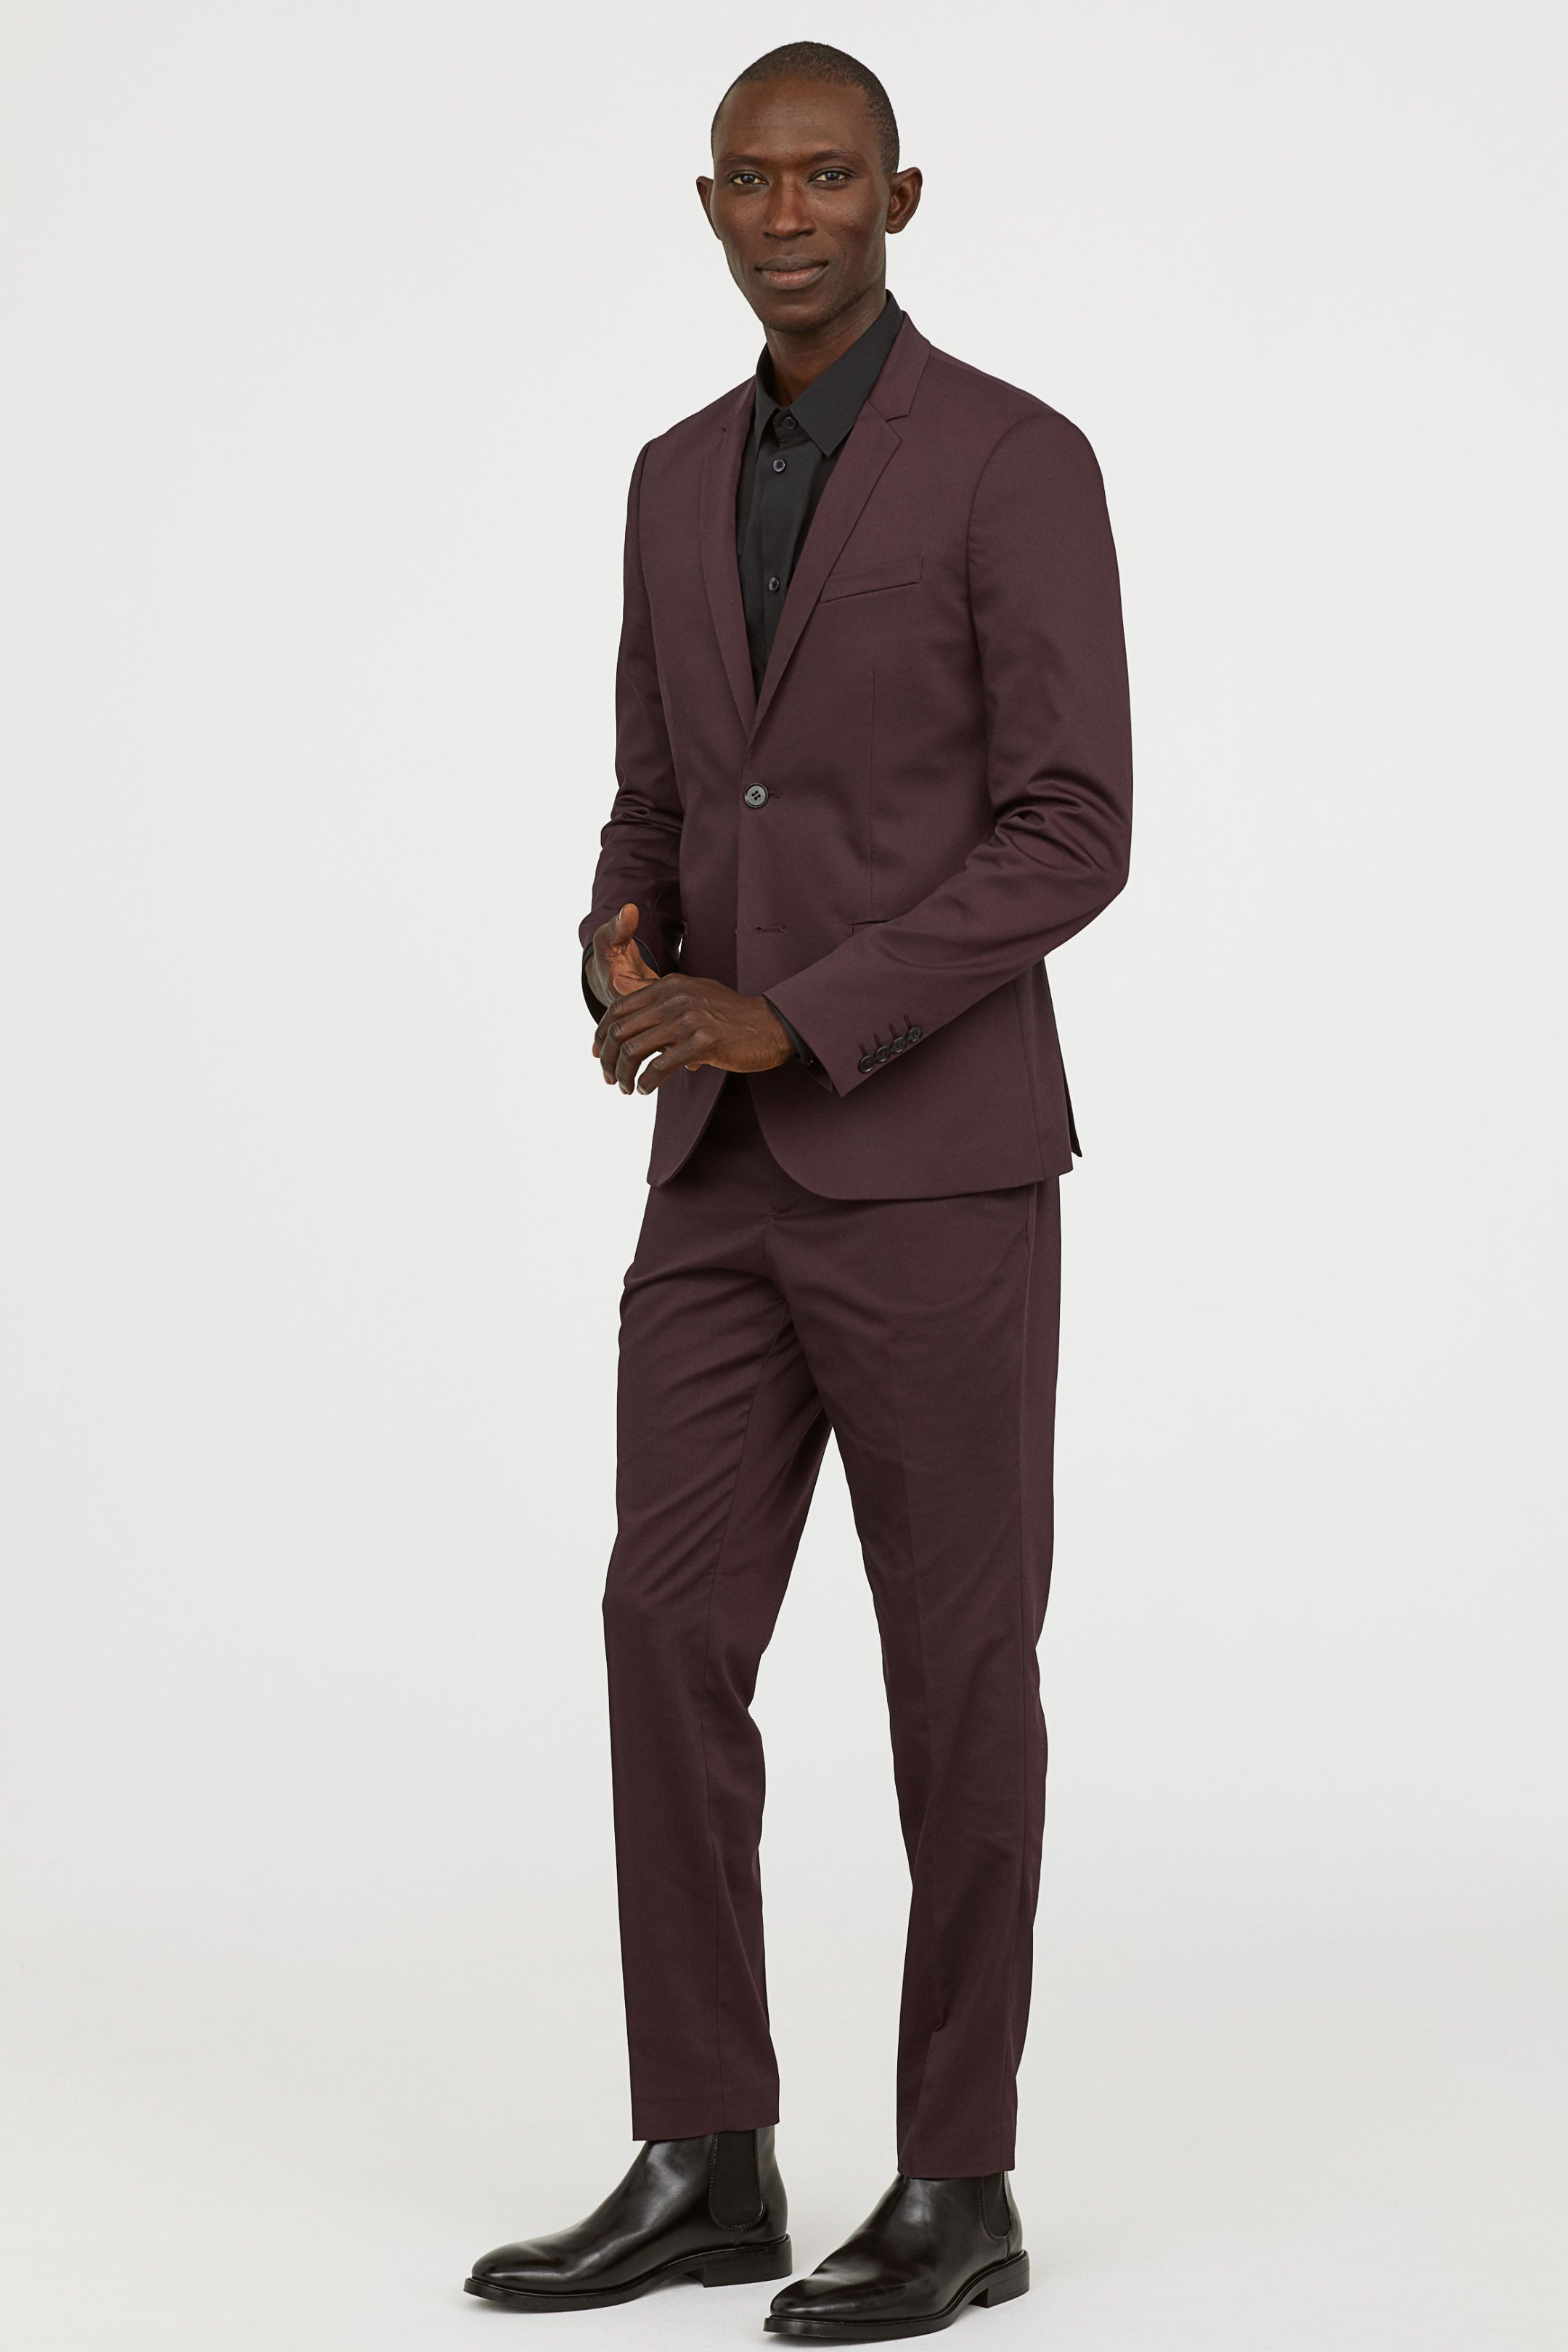 11 best prom tuxedo and suit styles of 2019 - cool prom outfits for guys